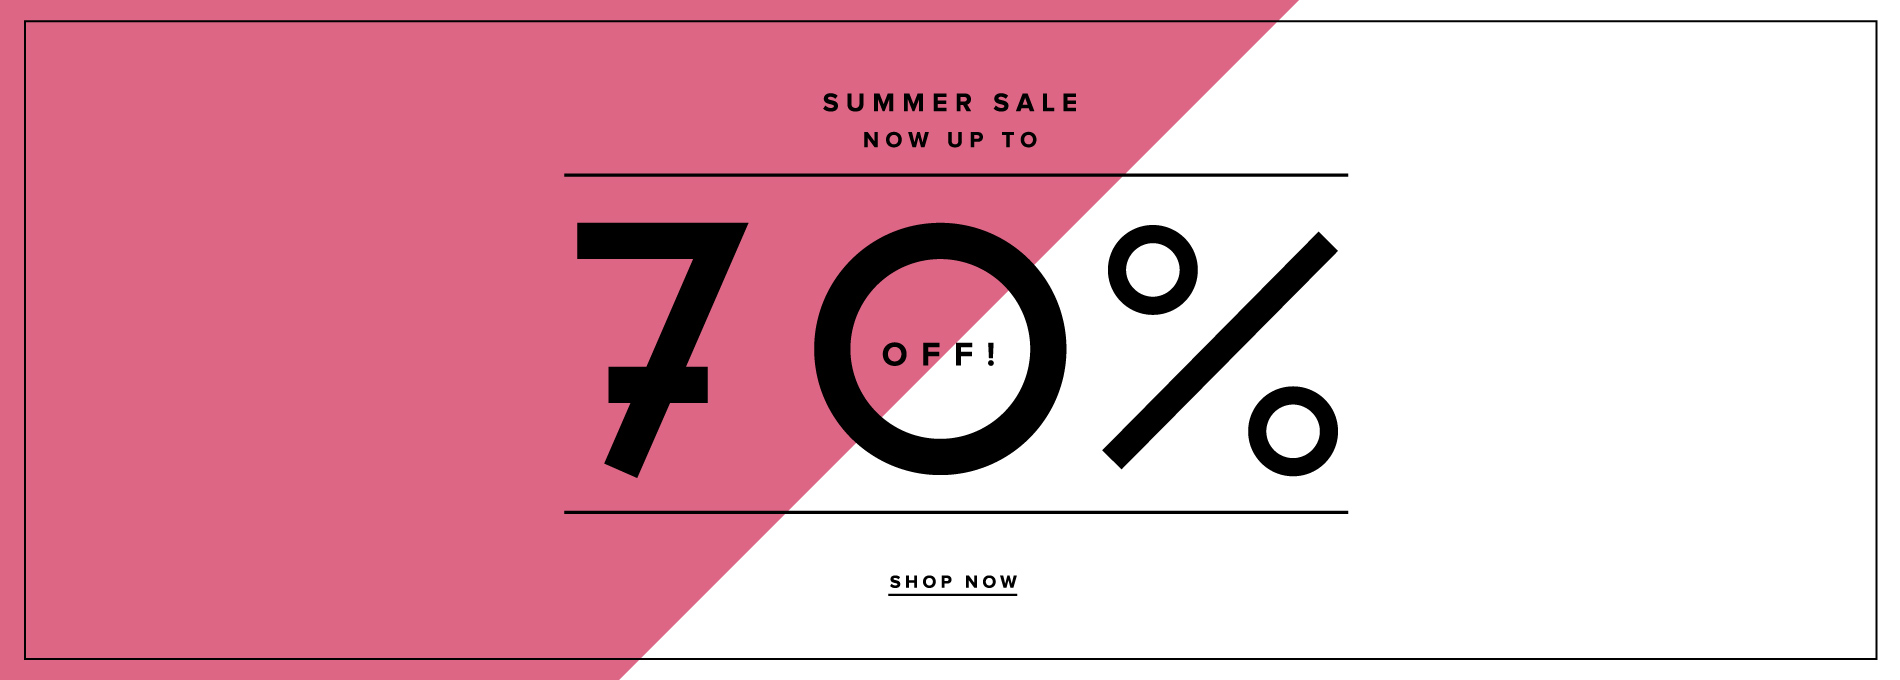 Suit Direct Suit Direct: Summer Sale up to 70% off men's suits, shirts, blazers and coats